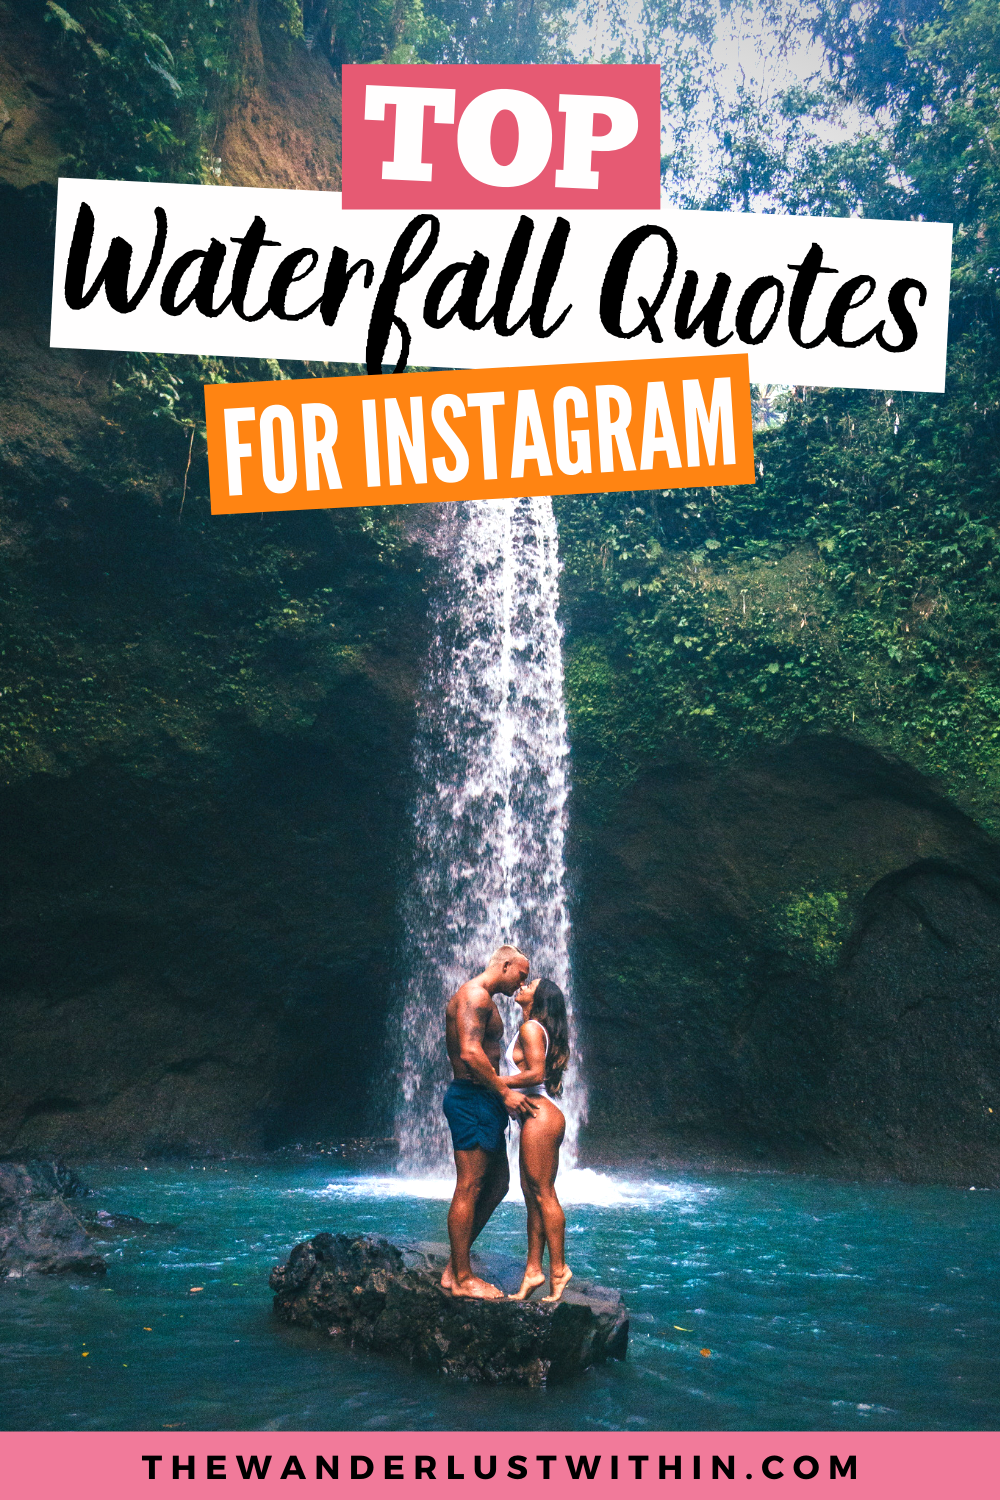 80 Best Waterfall Quotes For 2021 The Wanderlust Within In 2020 Waterfall Quotes Travel Photography Travel Instagram